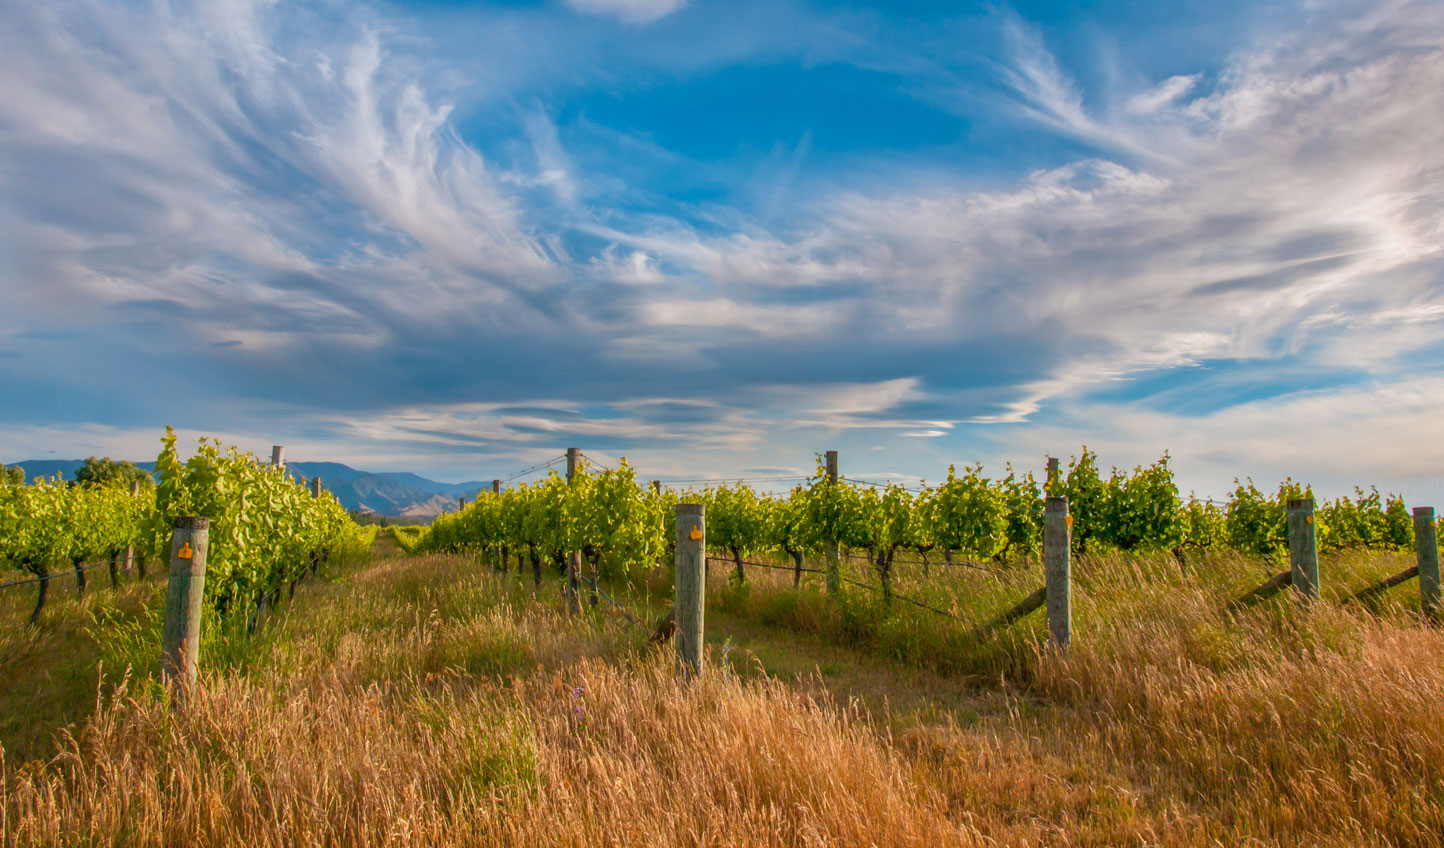 Dramatic skies above rolling vineyards